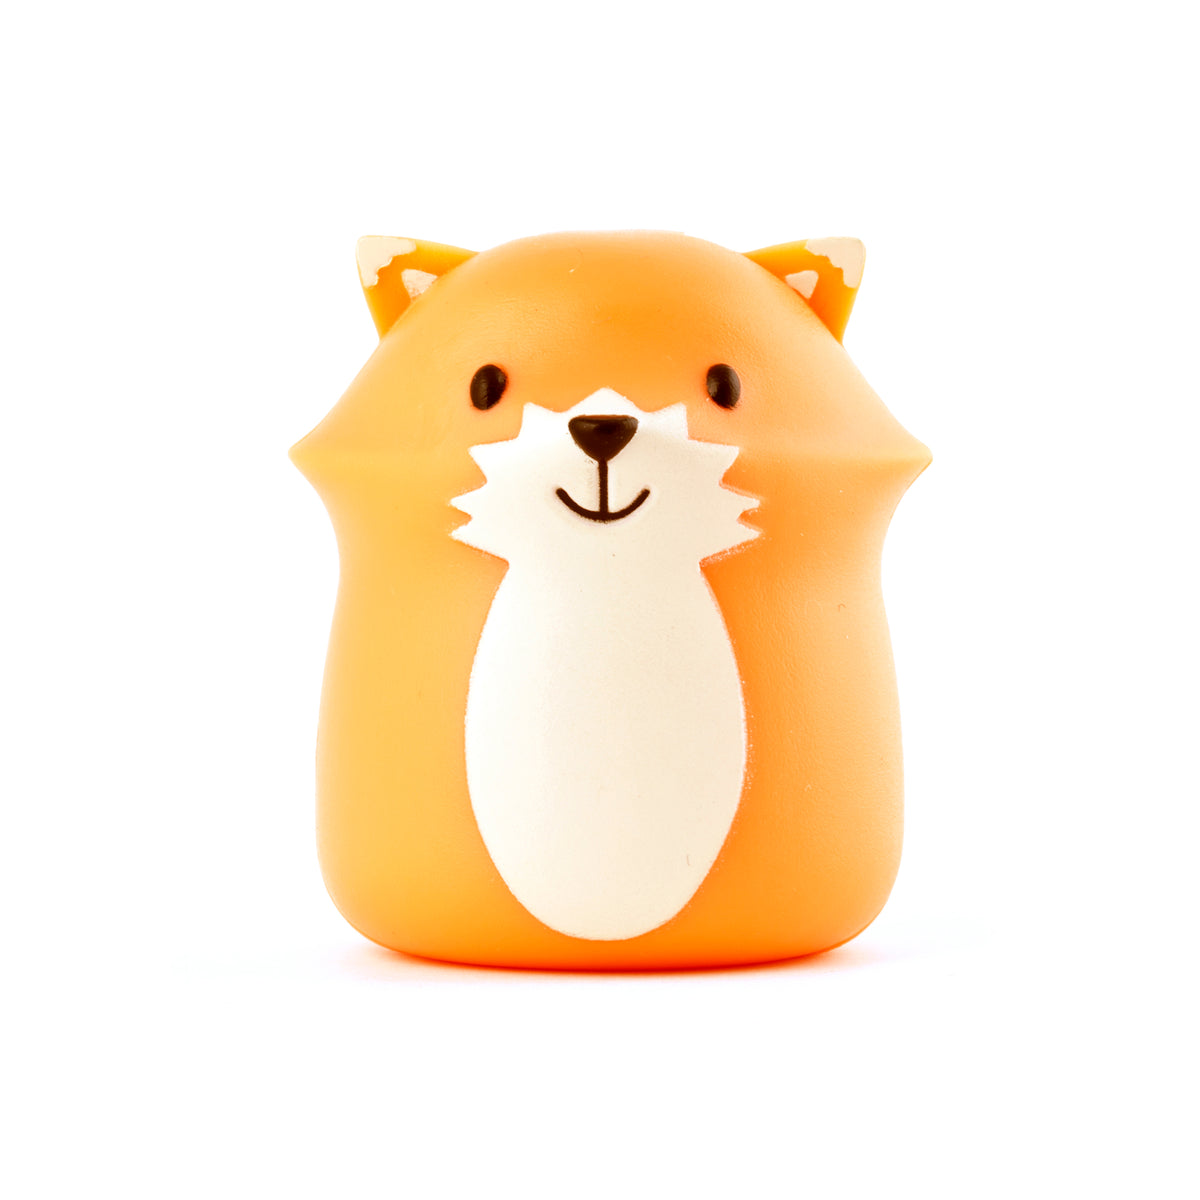 Toothbrush Holder Fox — Kikkerland Design Inc